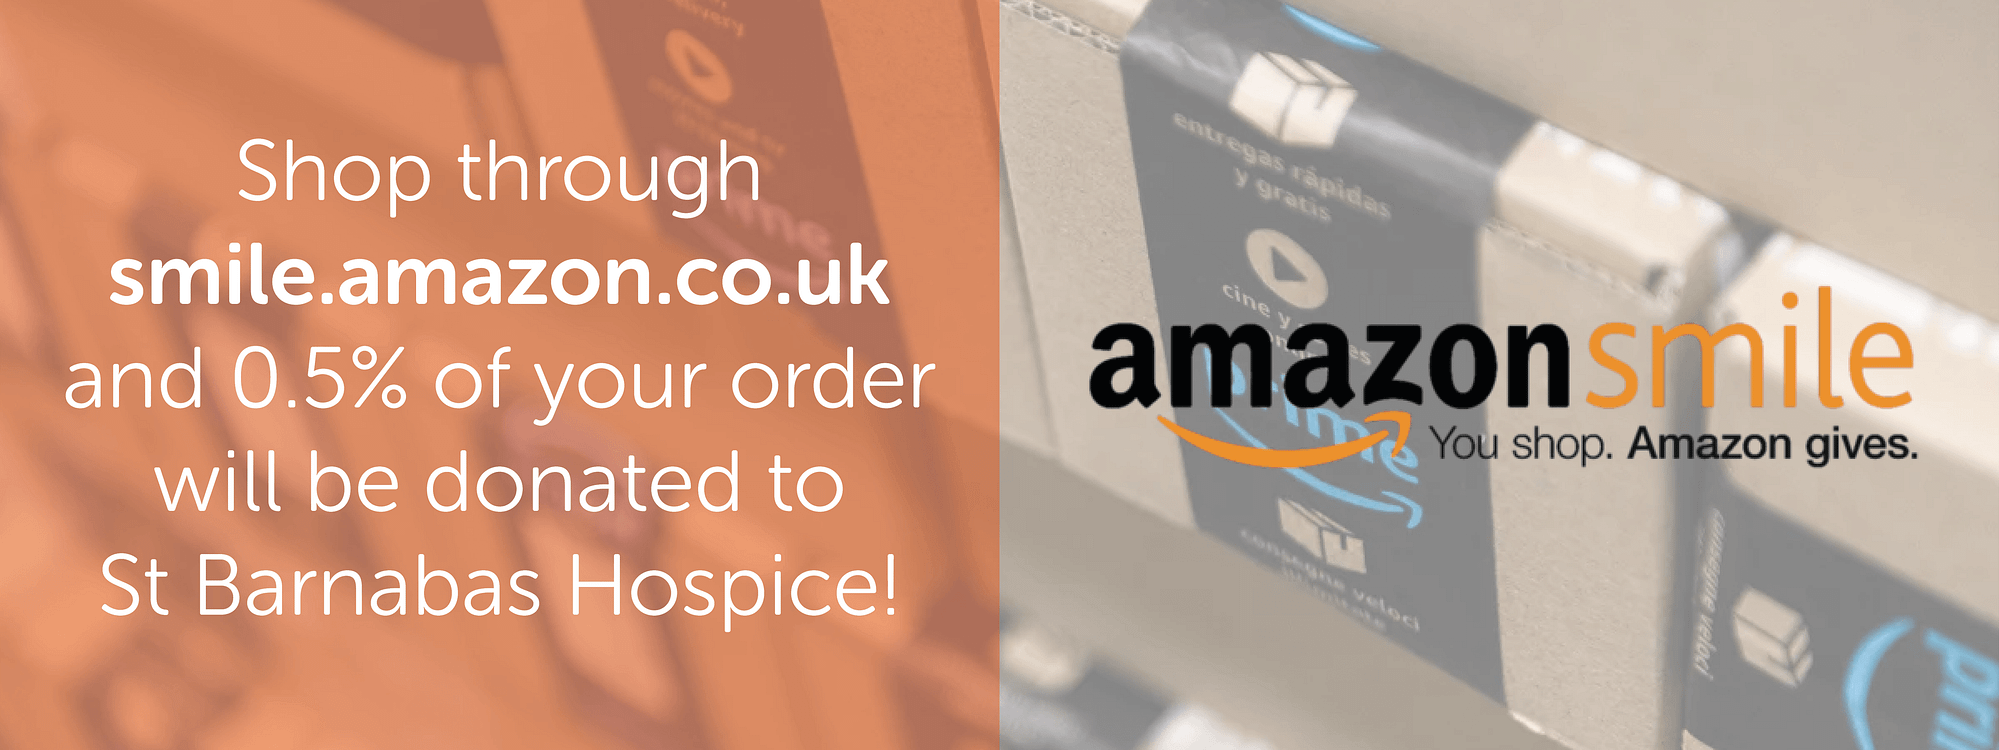 Did you know you we've signed up with AmazonSmile?